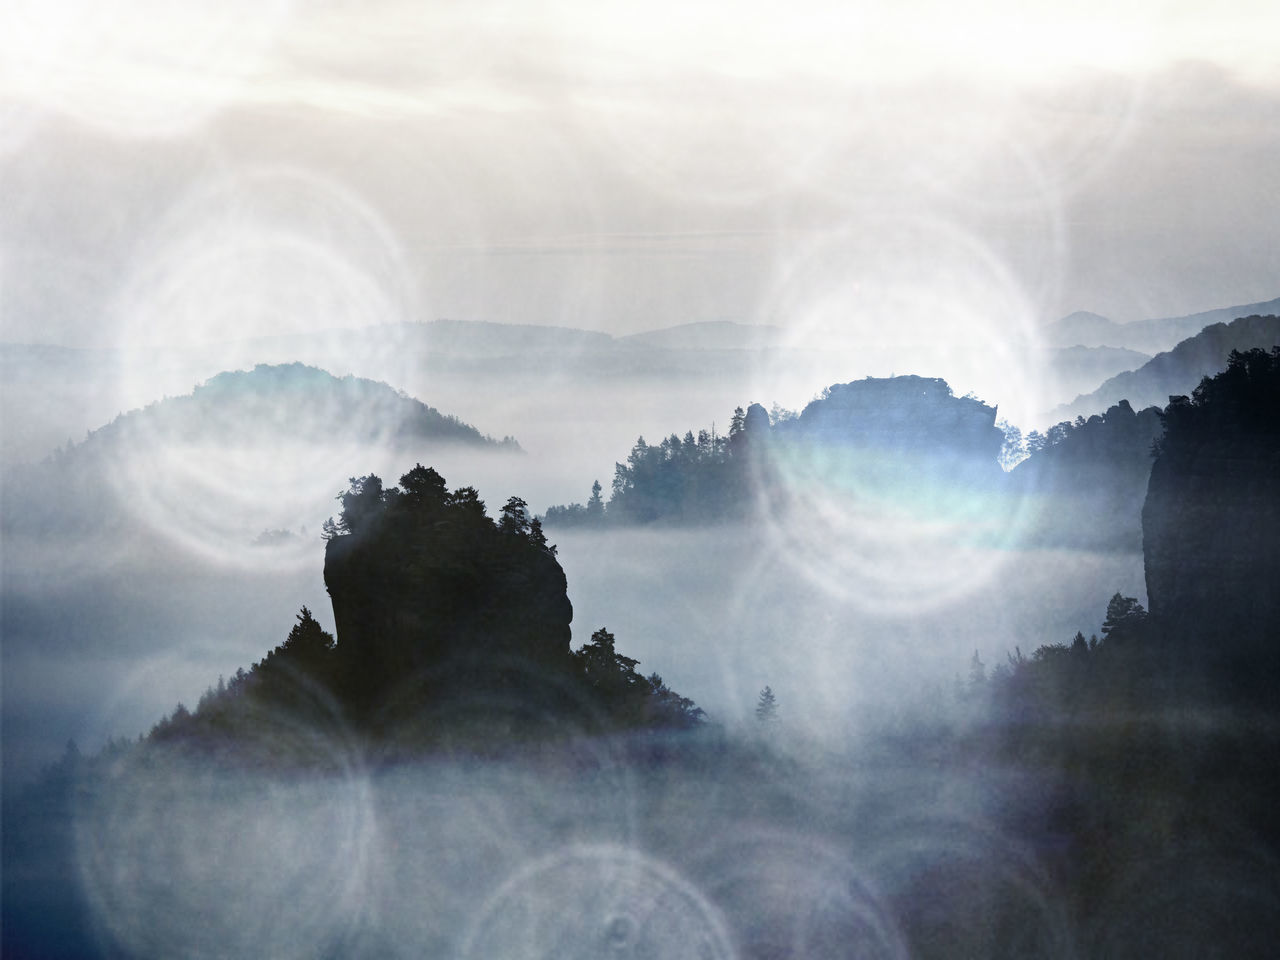 DIGITAL COMPOSITE IMAGE OF MOUNTAIN AND CLOUDS